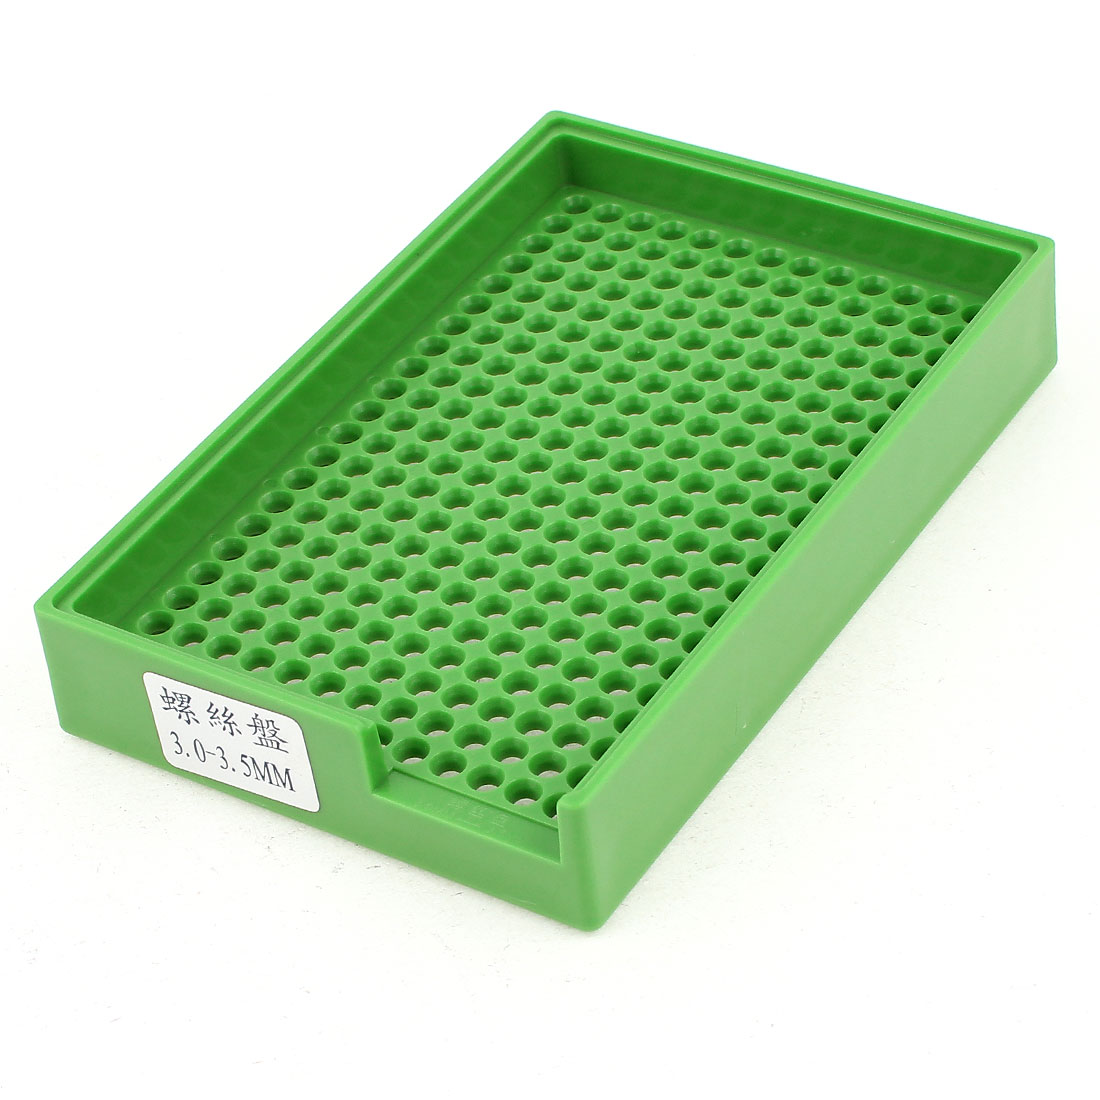 Anti-static Plastic Tray Holder Green 273 Holes for 3.0mm-3.5mm Screws